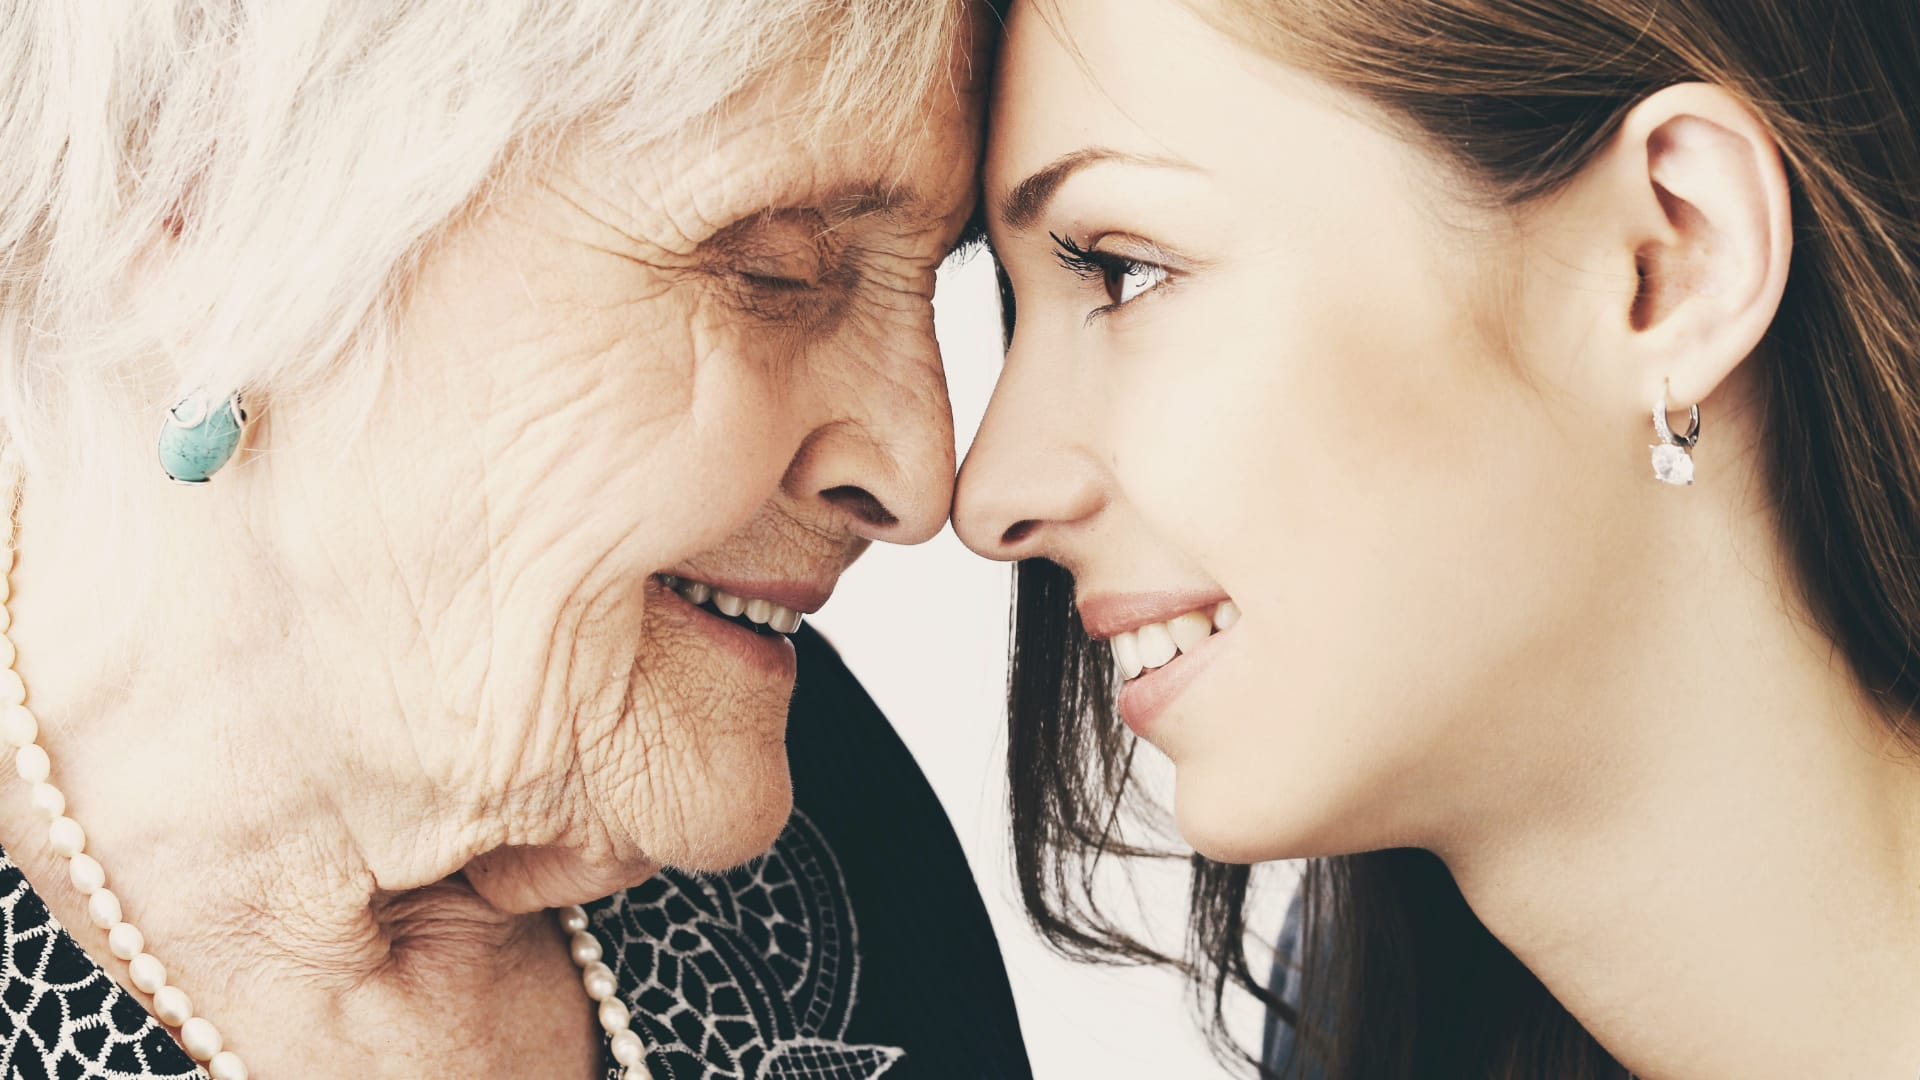 Older woman and young woman with foreheads touching, smiling.